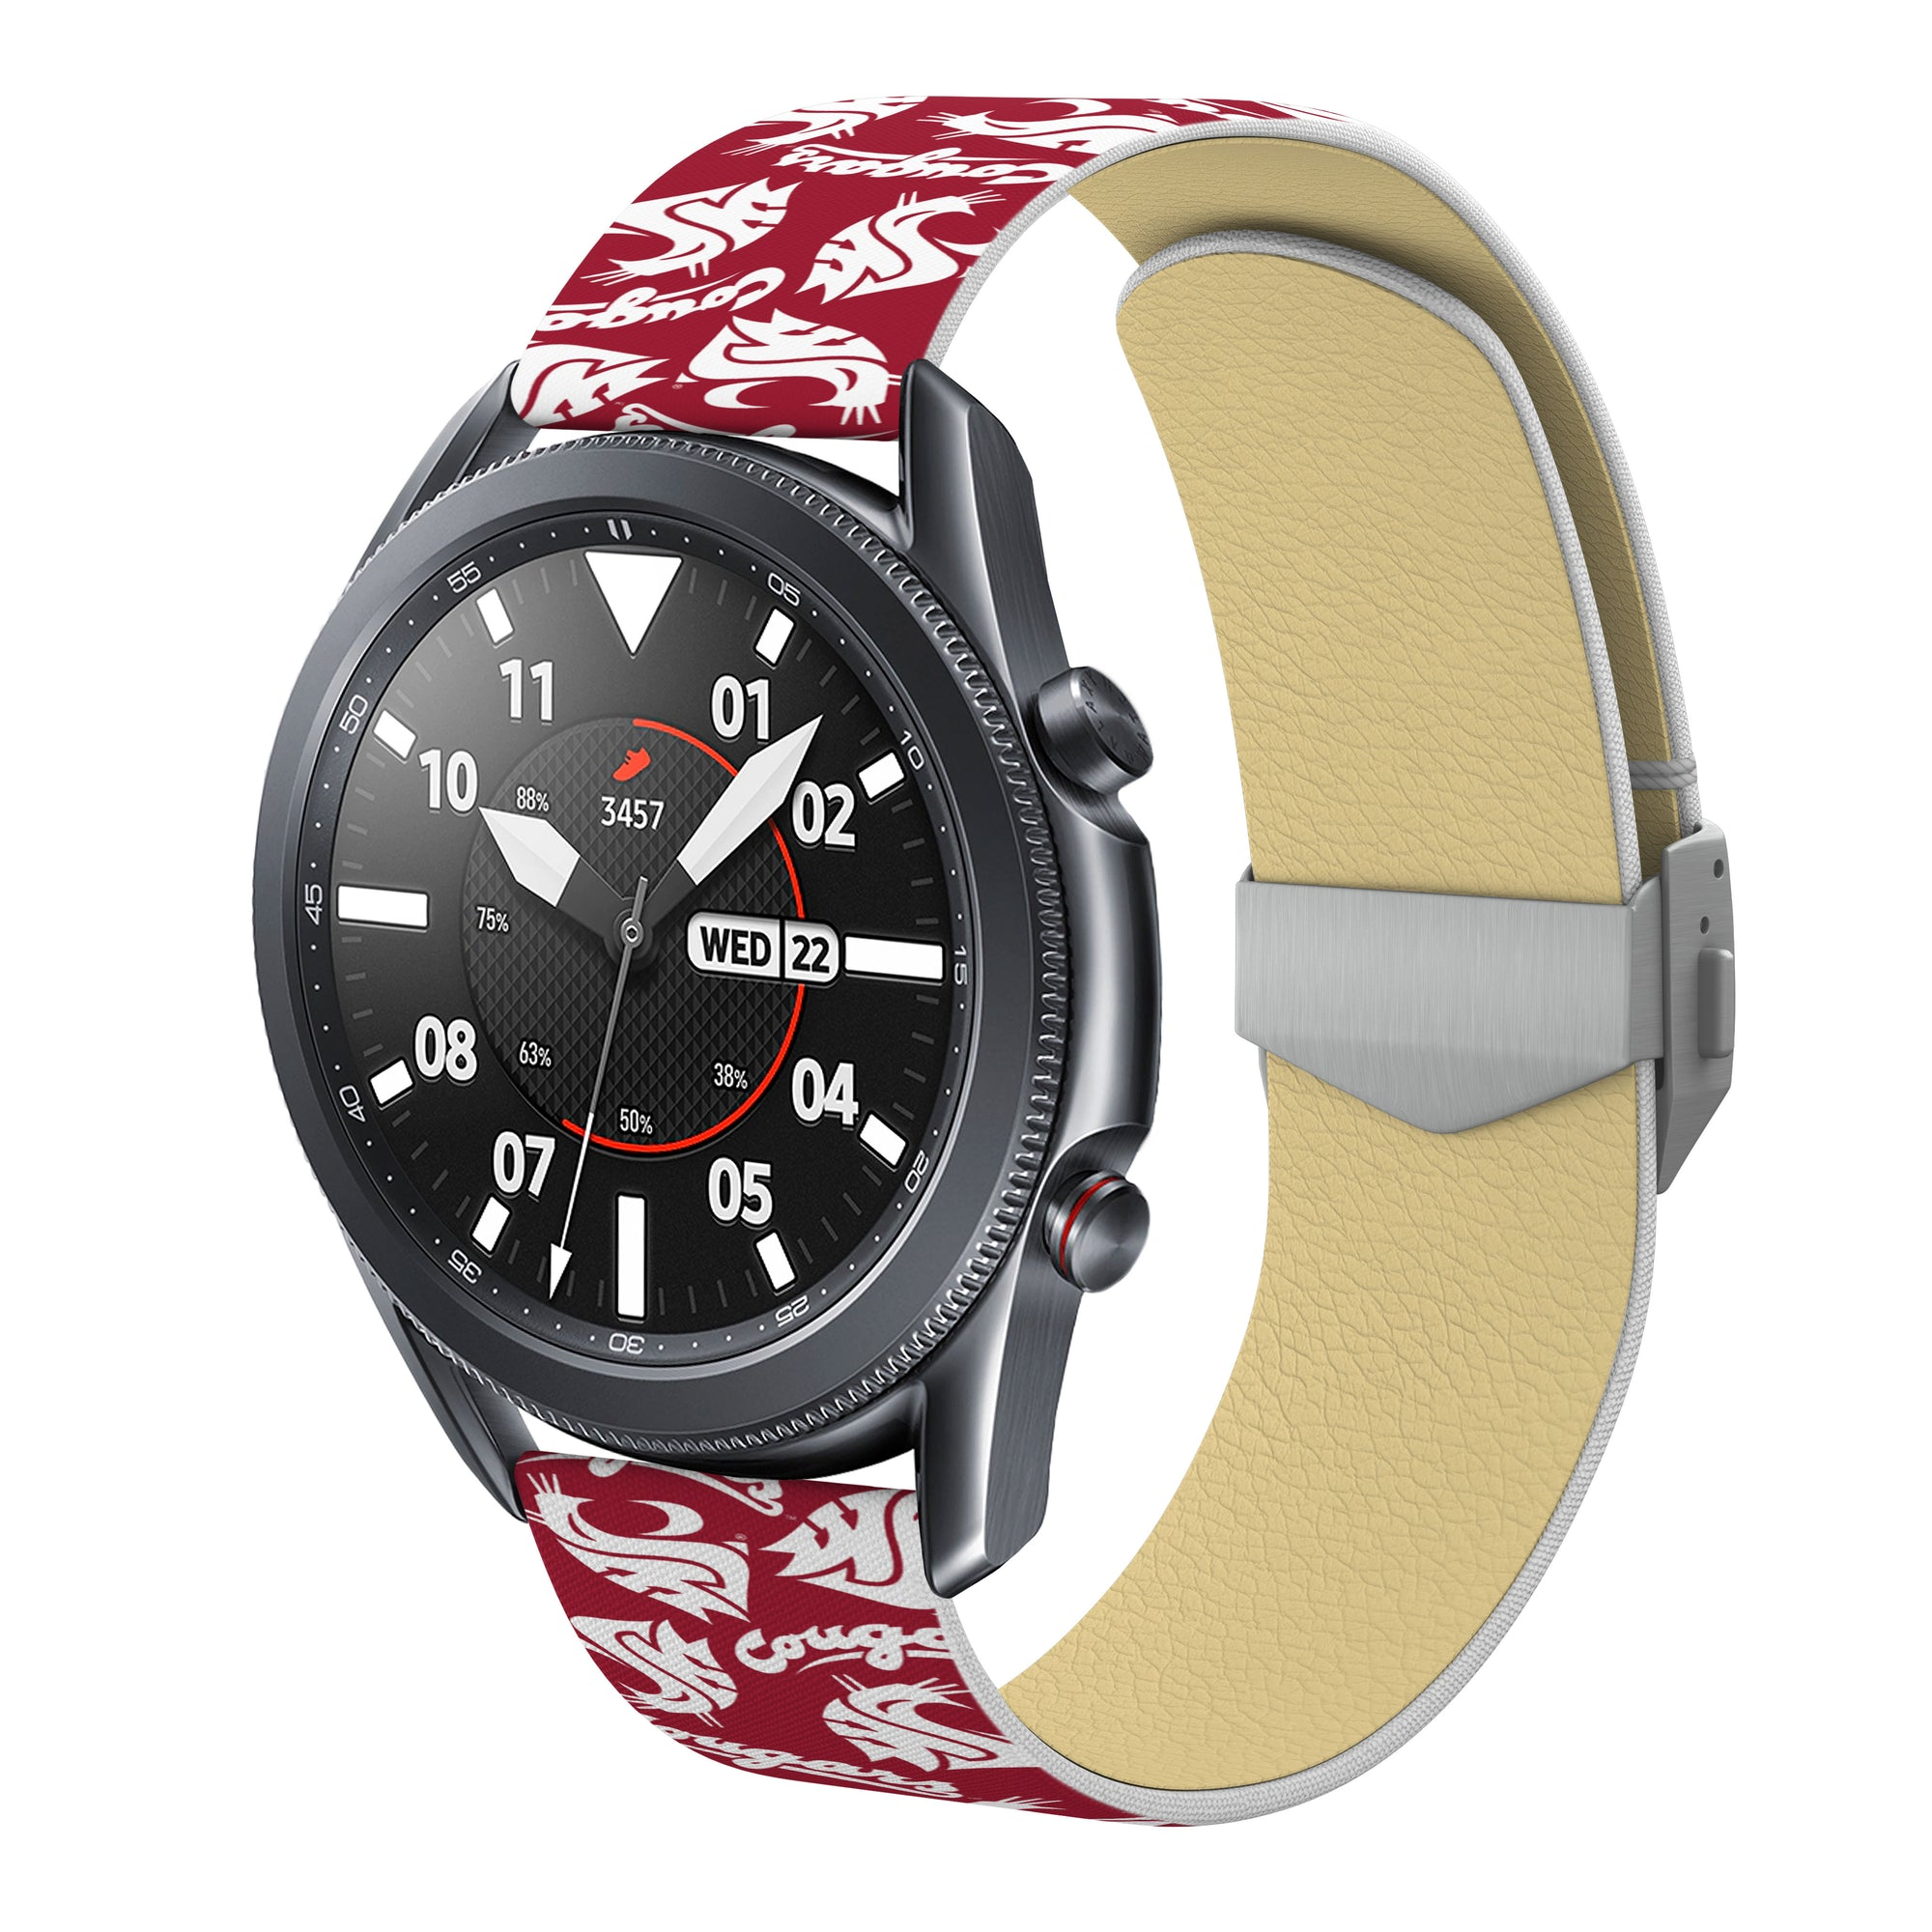 Washington State Cougars Full Print Quick Change Watch Band With Engraved Buckle - AffinityBands